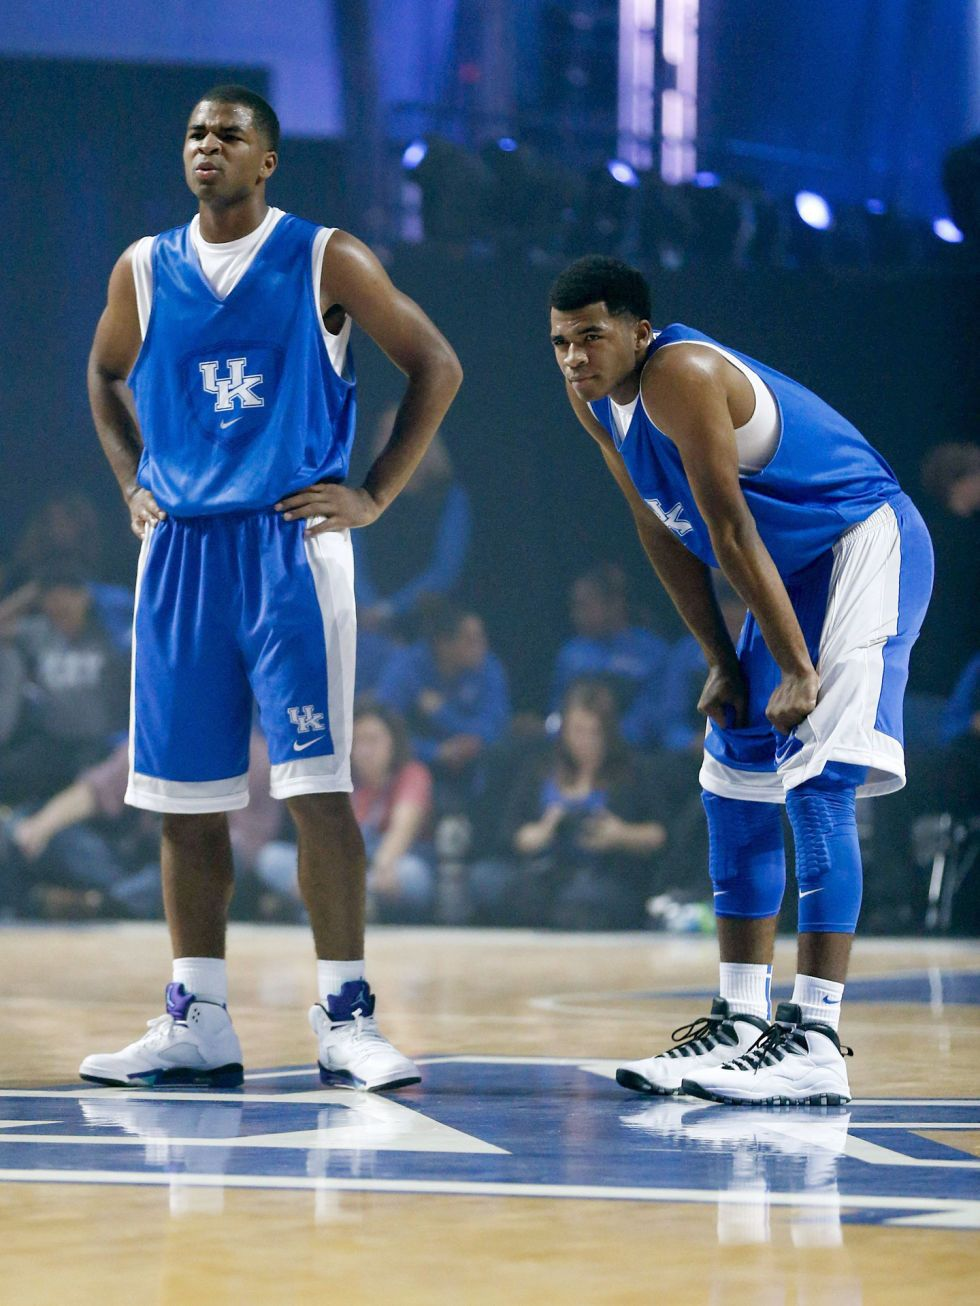 Hottest College Basketball Players! College basketball